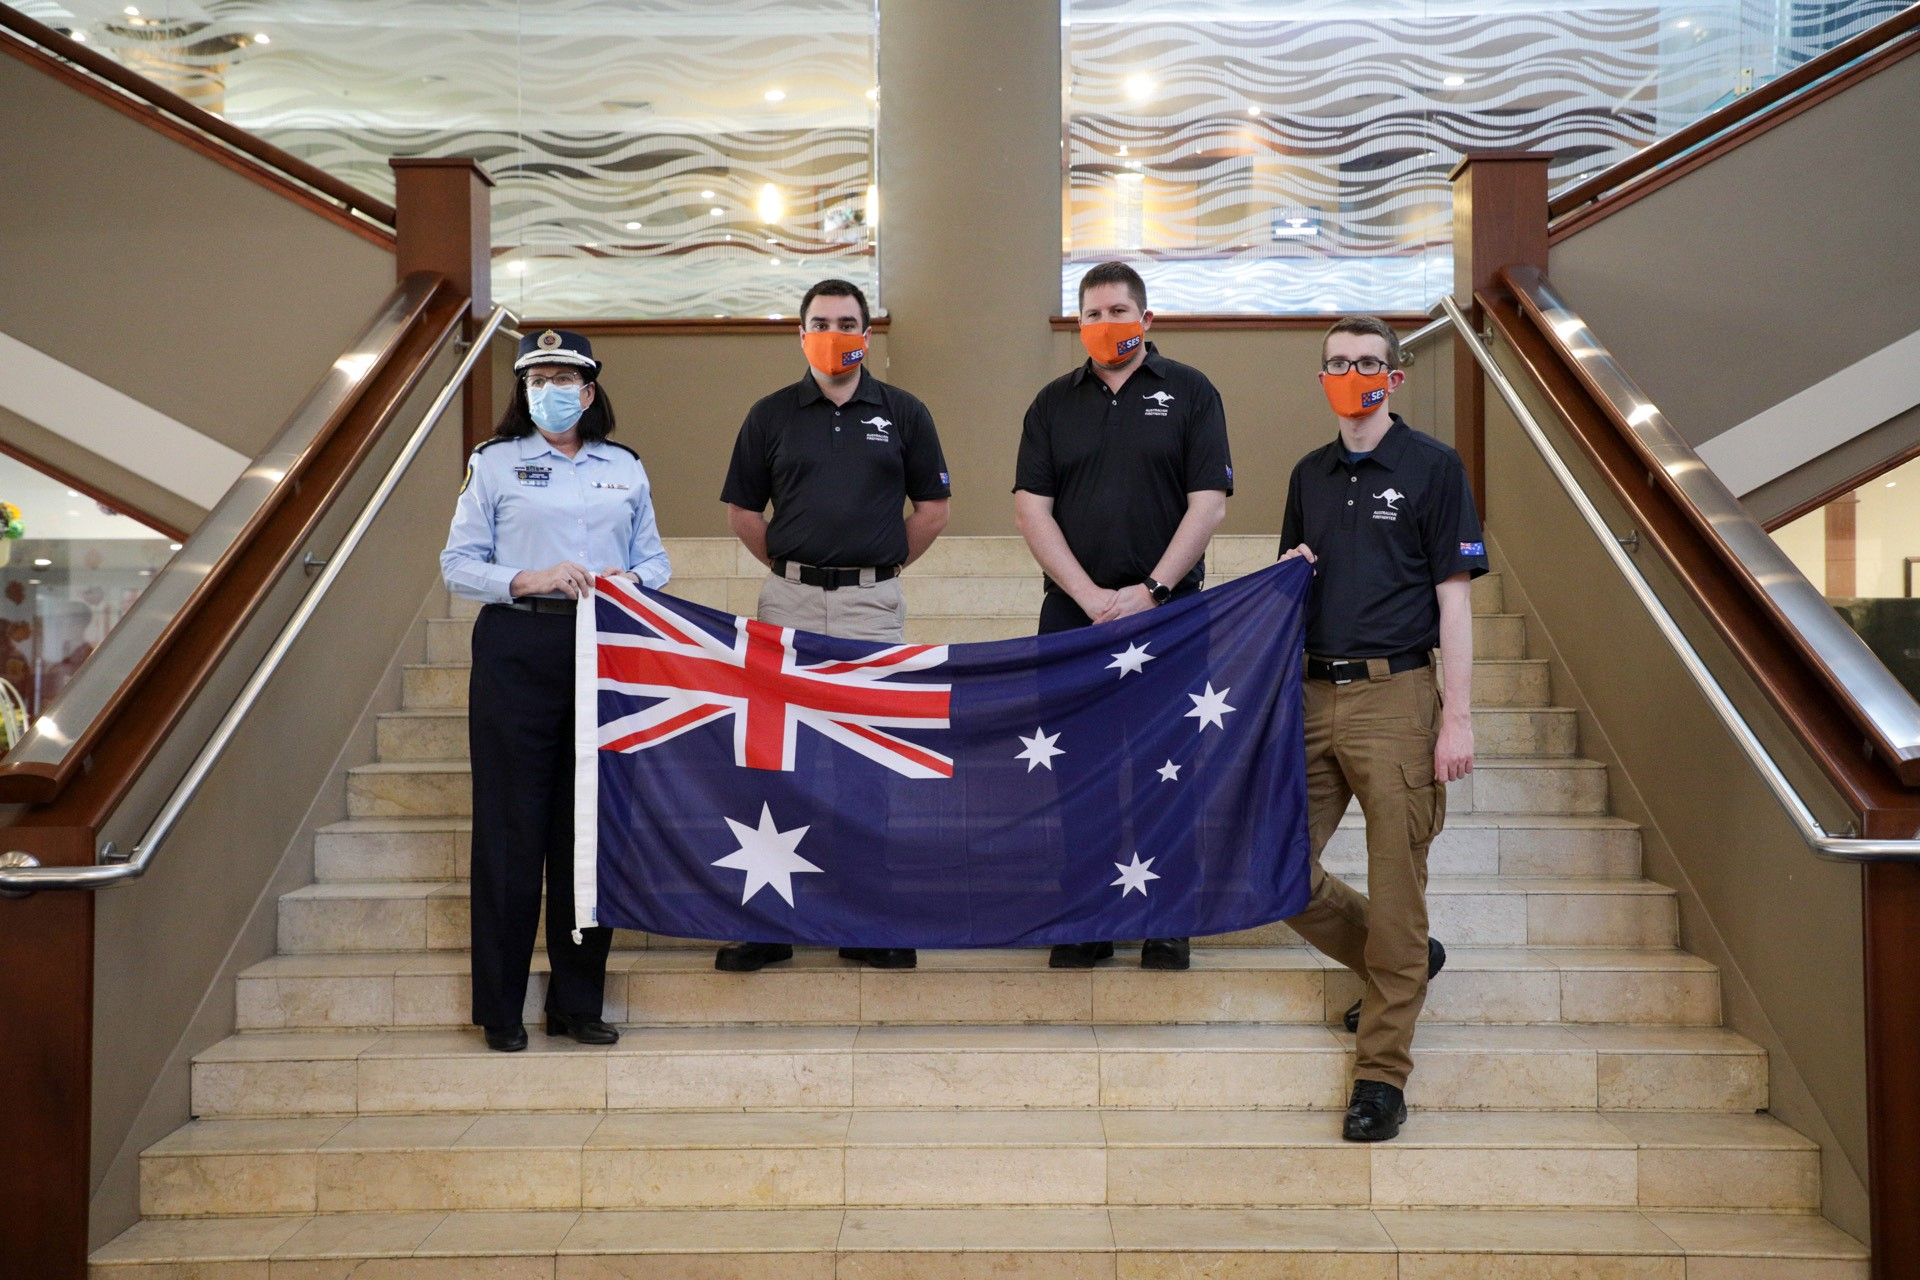 NSW FIREFIGHTERS AND EMERGENCY SPECIALISTS TO HELP BATTLE WILDFIRES IN CANADA